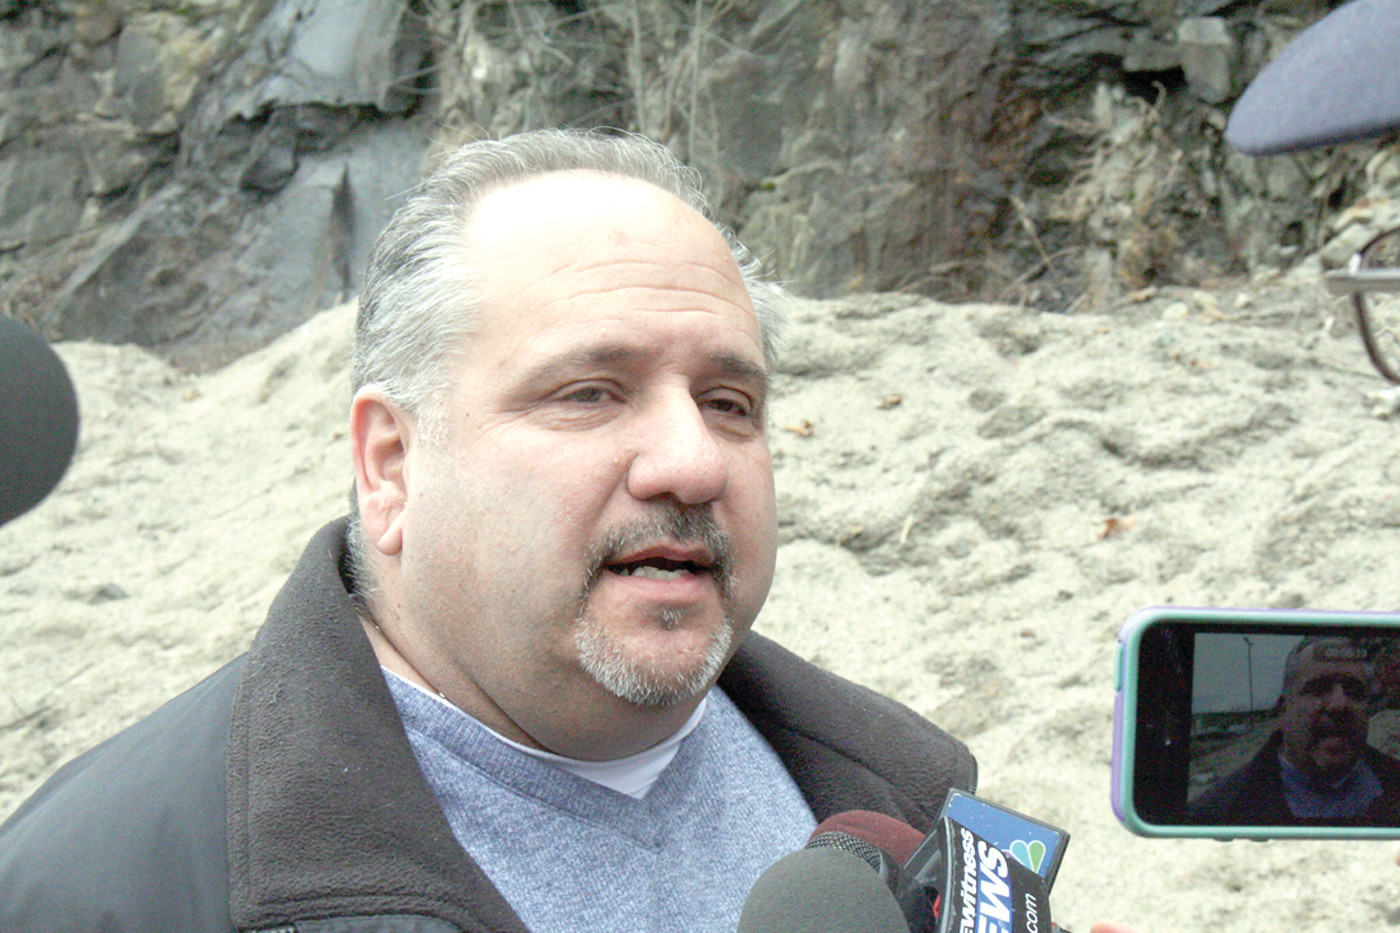 WE'RE READY: John Corso, Highway Superintendent for Cranston's Department of Public Works, talks about the upcoming storm Monday afternoon near the rapidly depleting salt-pile at their headquarters on Phenix Avenue.